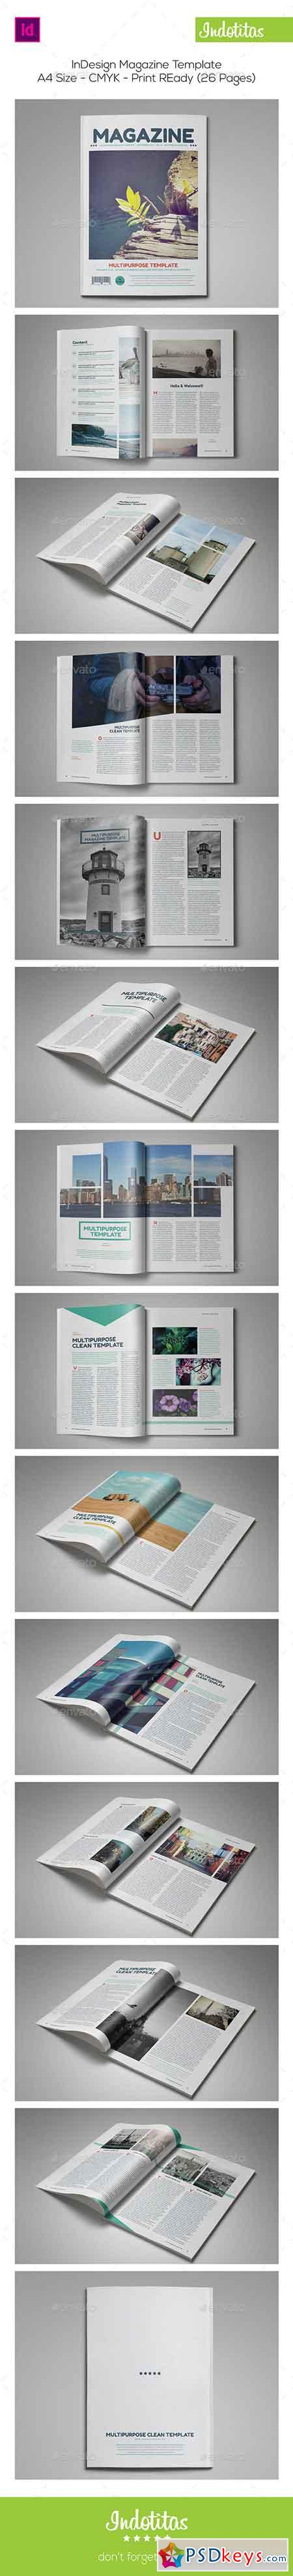 InDesign Magazine Template 9272416